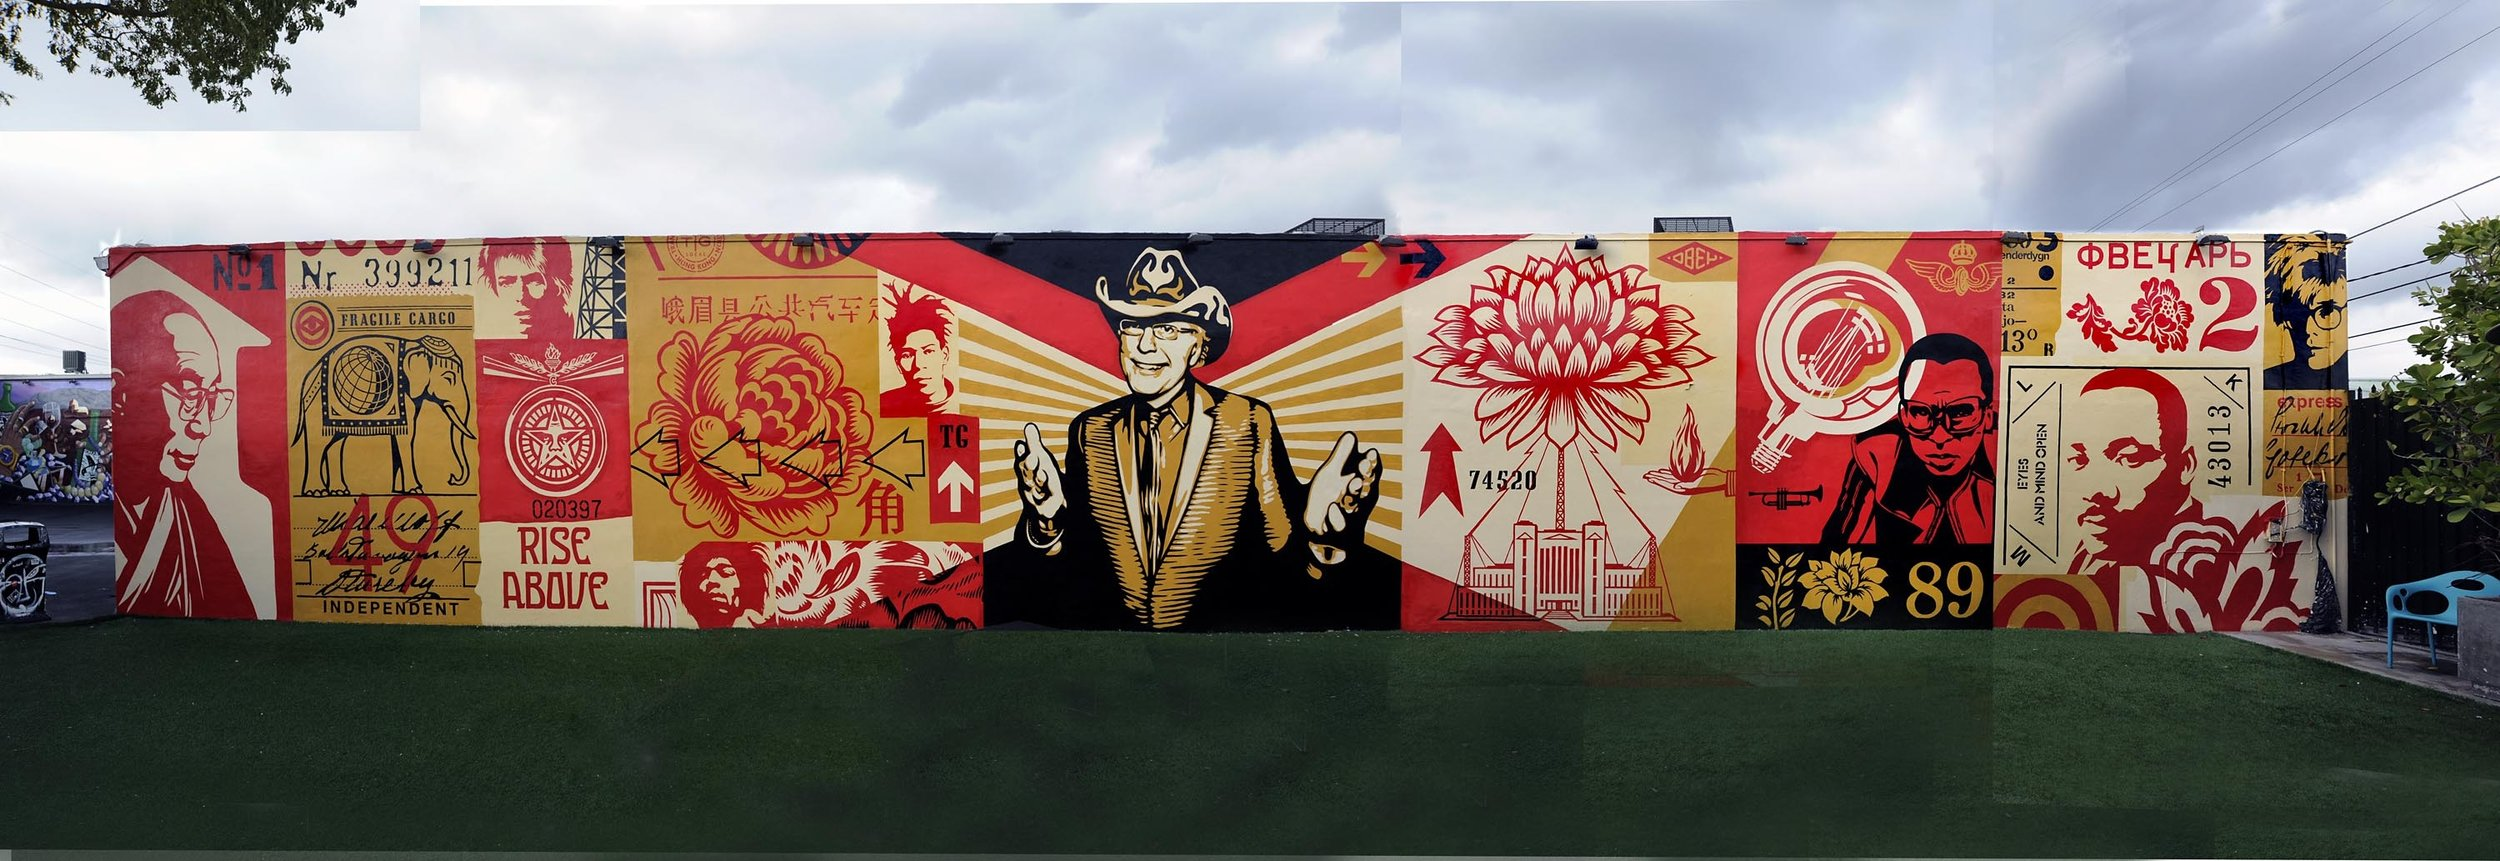 MURAL BY SHEPARD FAIREY INSIDE THE WYNWOOD WALLS